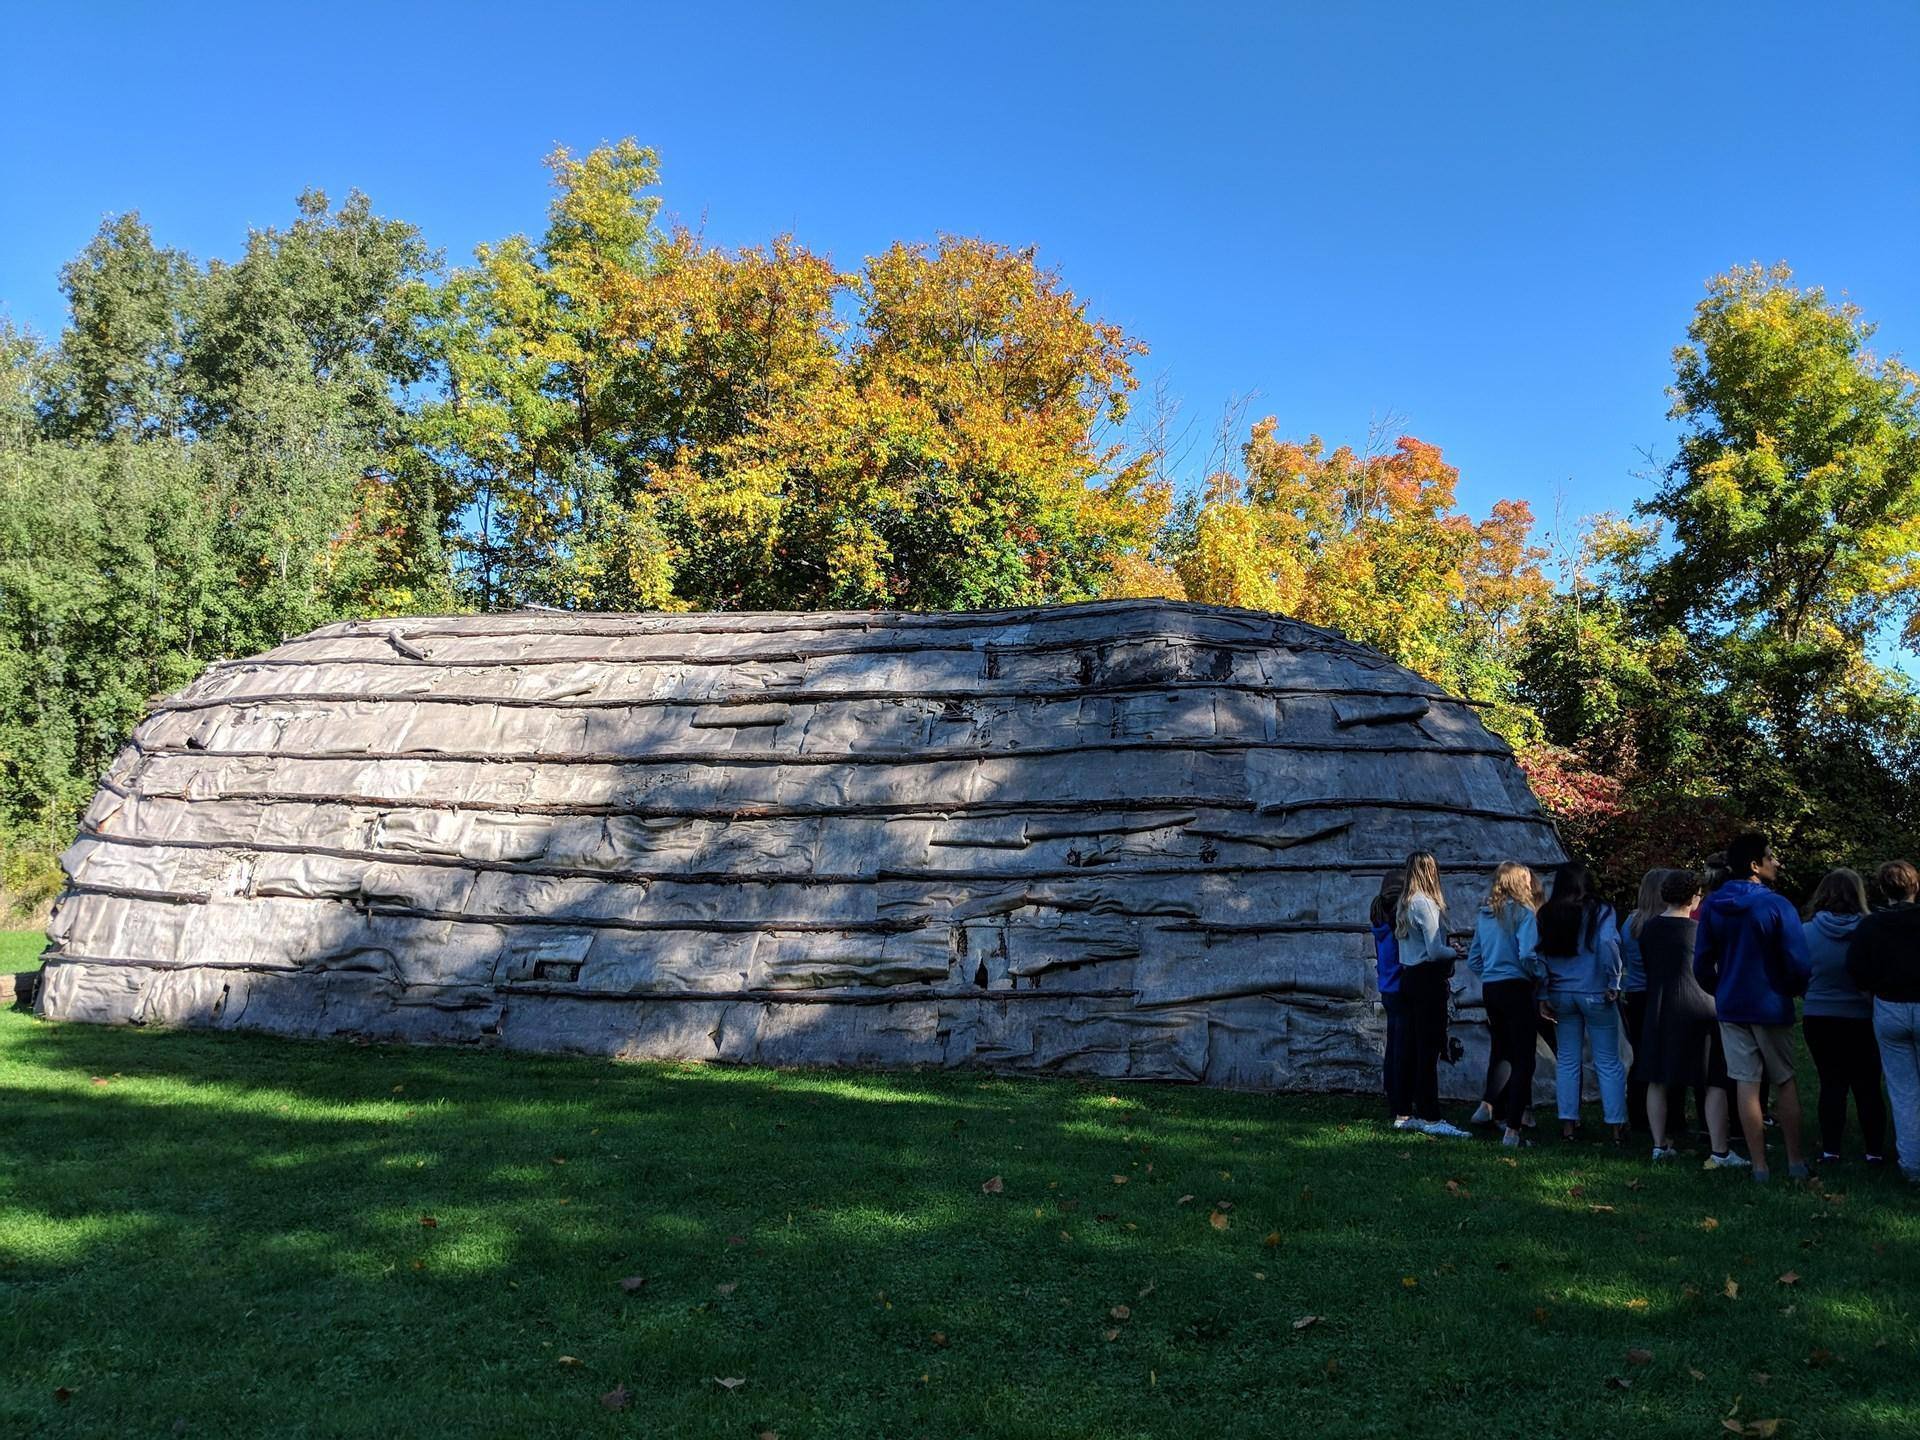 Students standing near giant rock